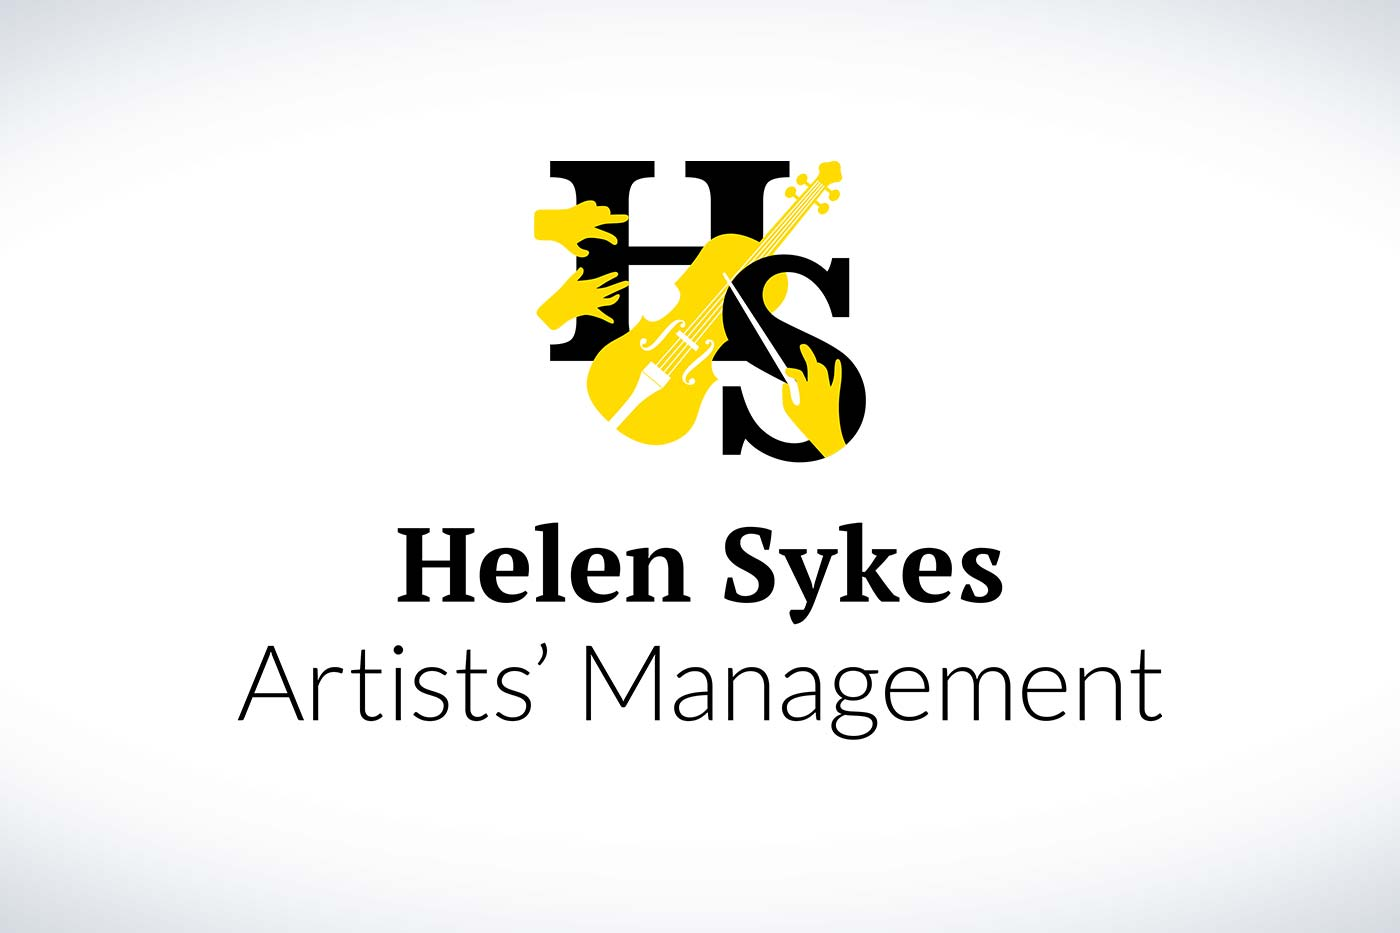 Helen Sykes Artists' Management logo design by Marshall Light Studio